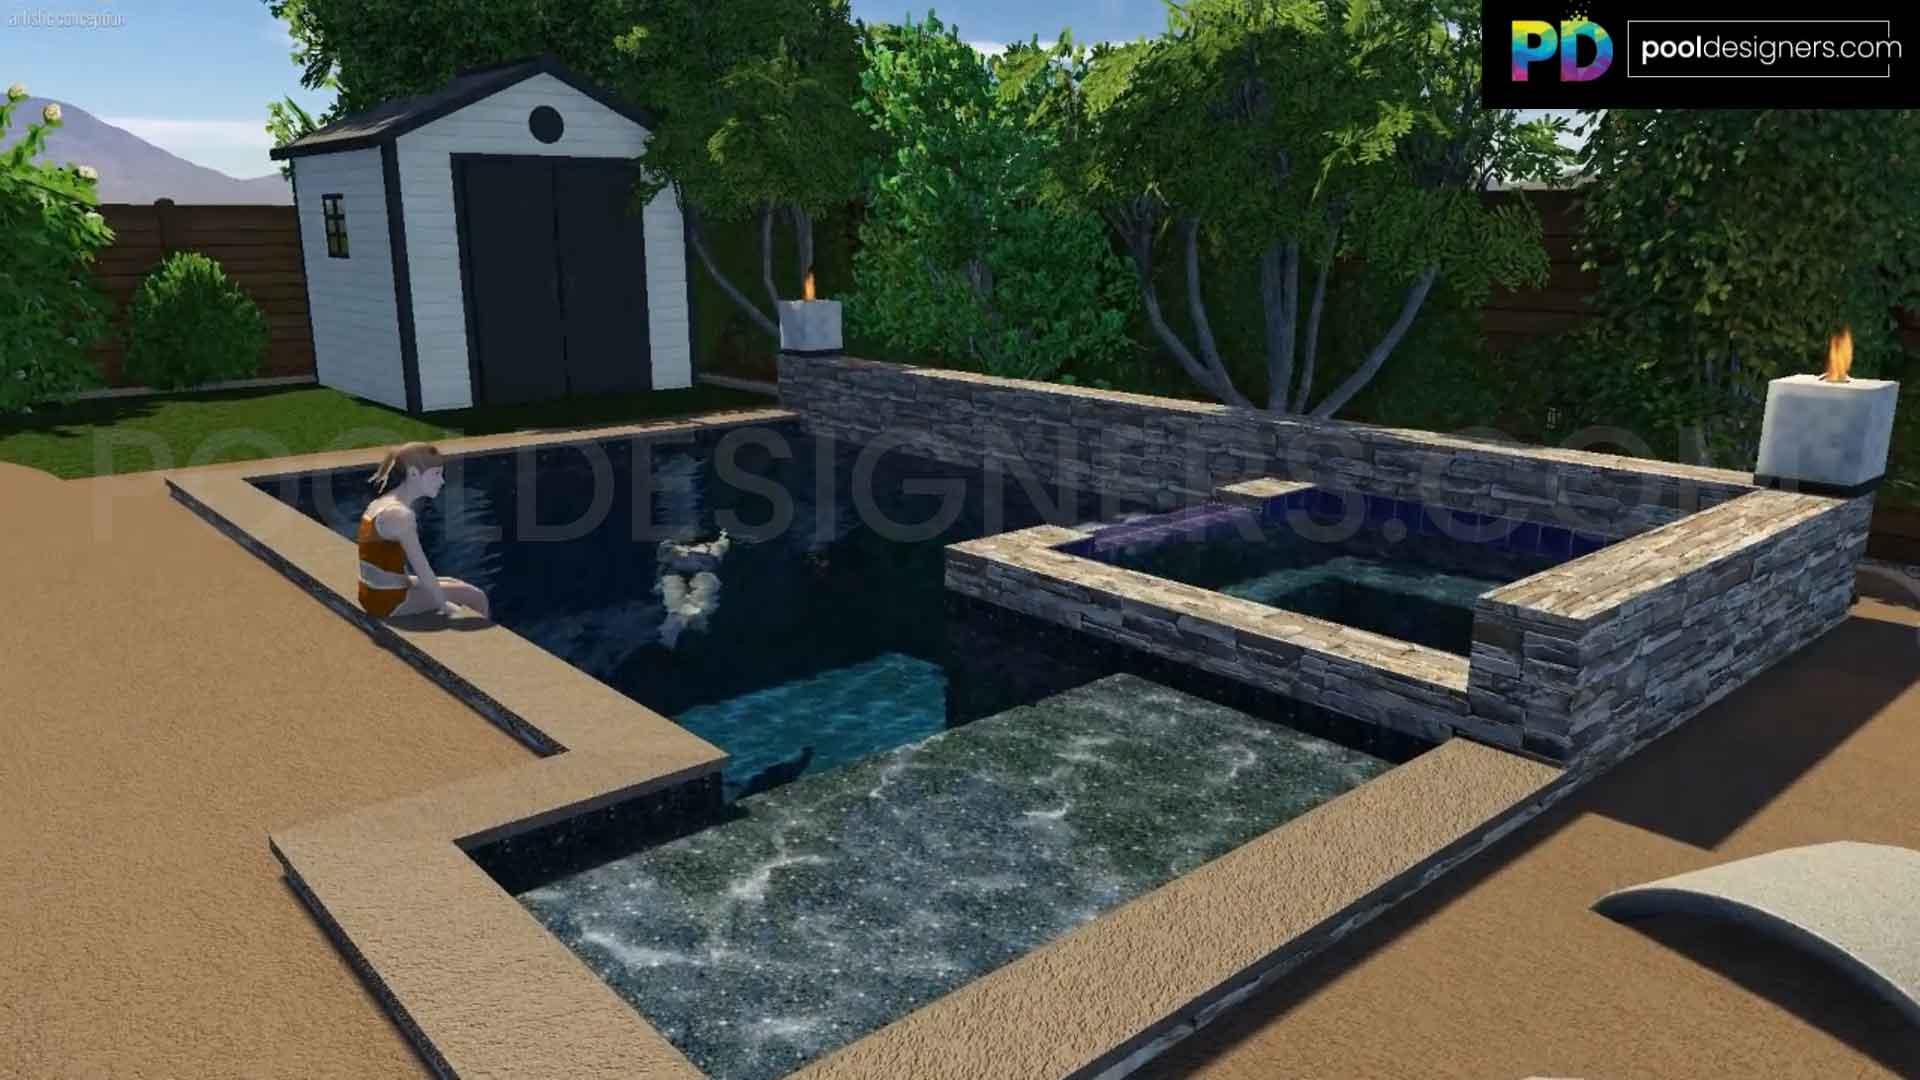 Geometric Spool With Spillover Spa Pd11 3d Pool Design Pool Designers Buy 3d Pool Designs Online From Expert 3d Pool Designers